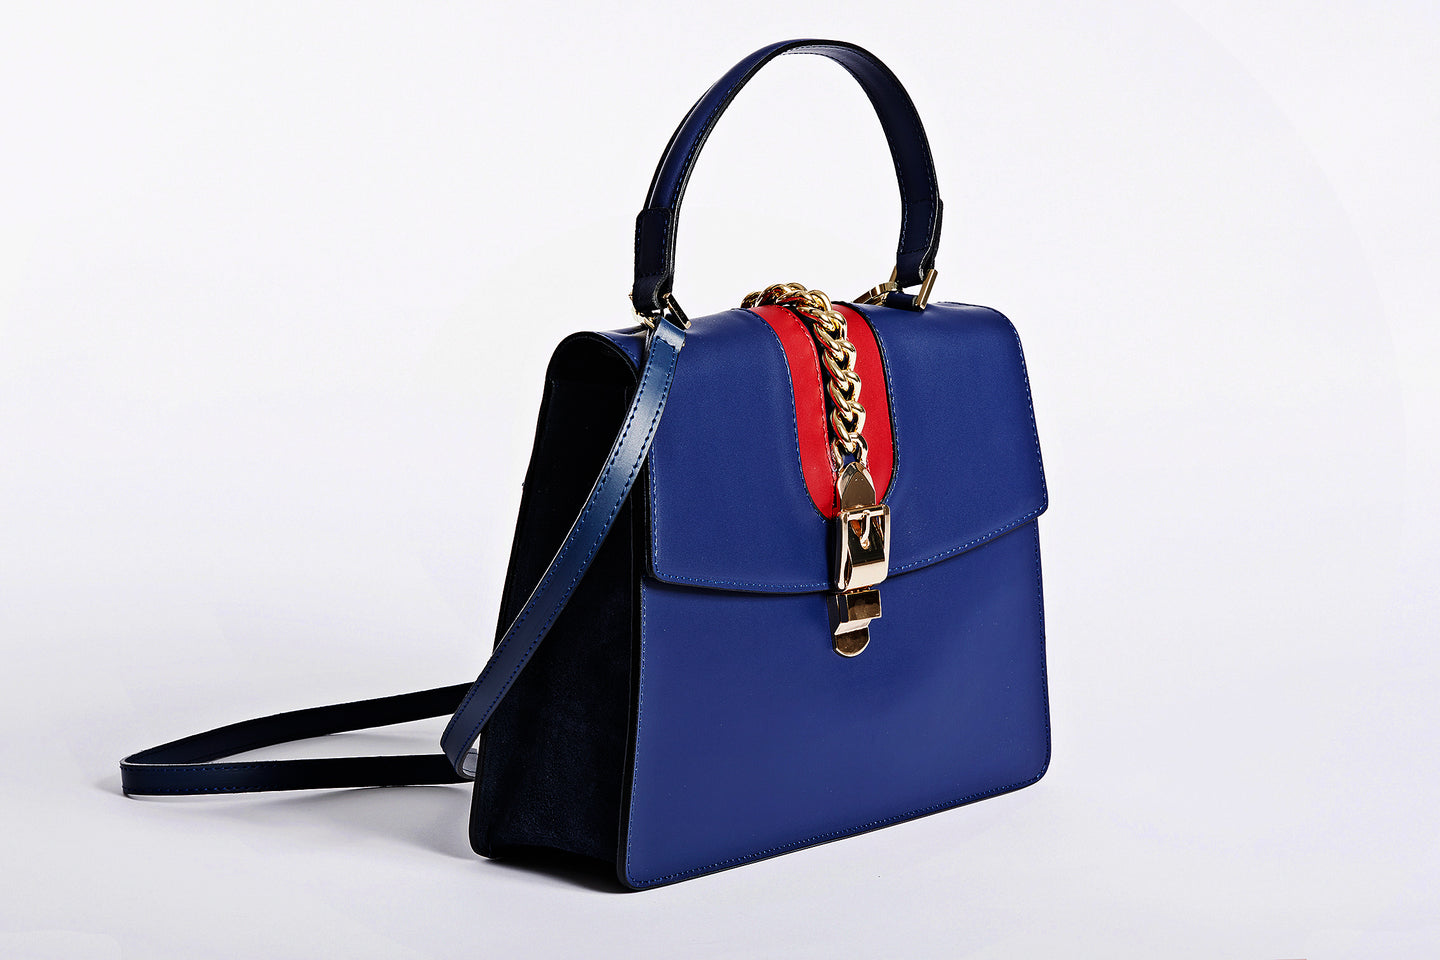 Italian leather side bag and handbag